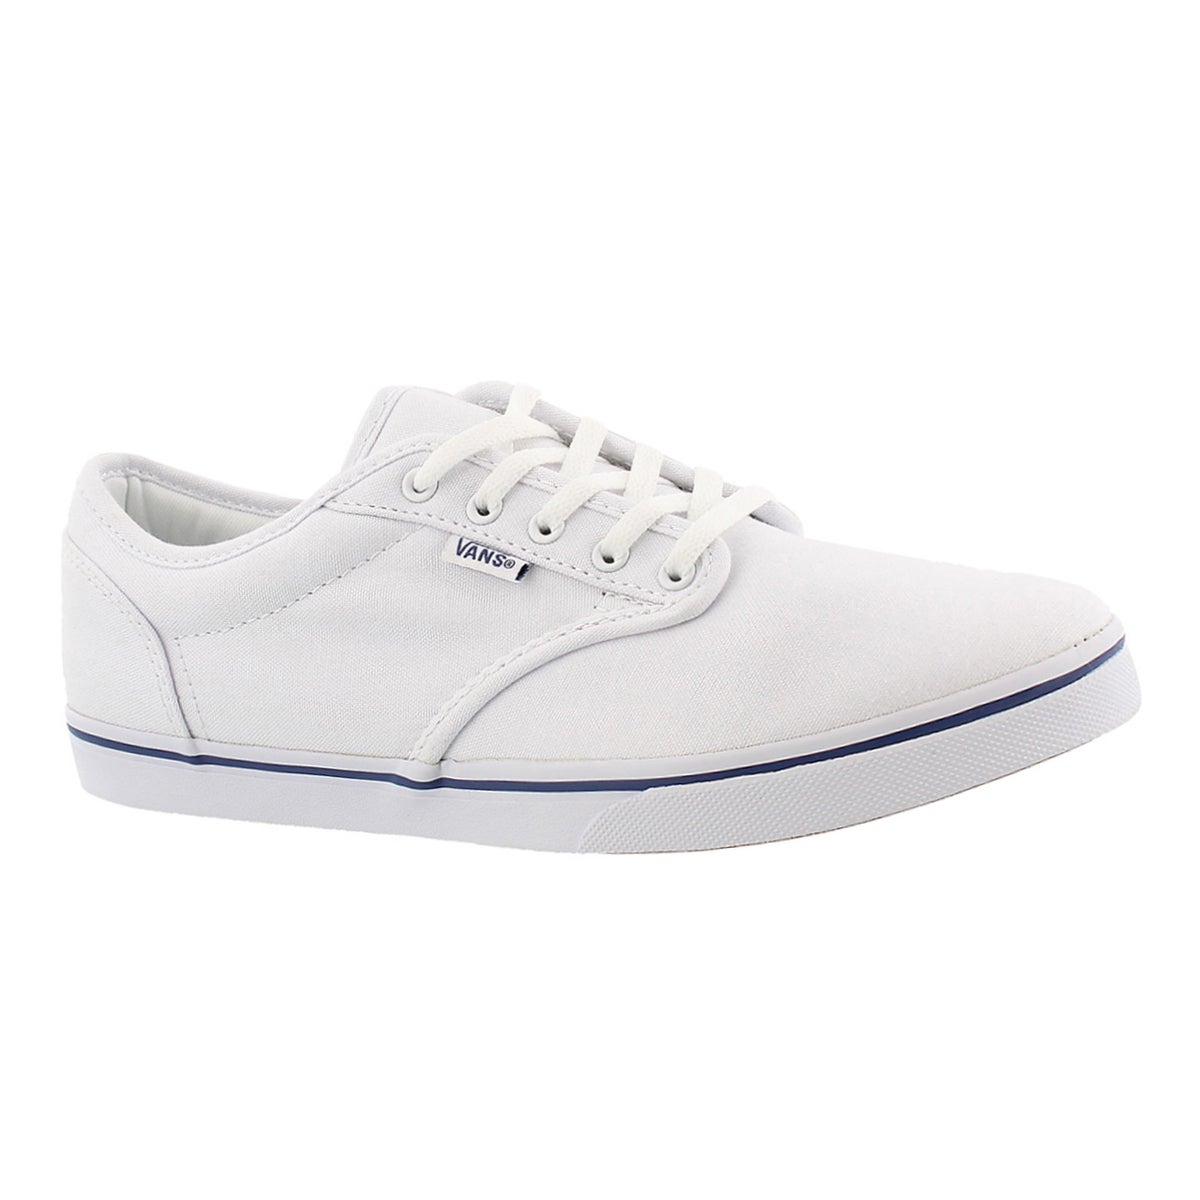 Women's ATWOOD LOW white lace up sneakers